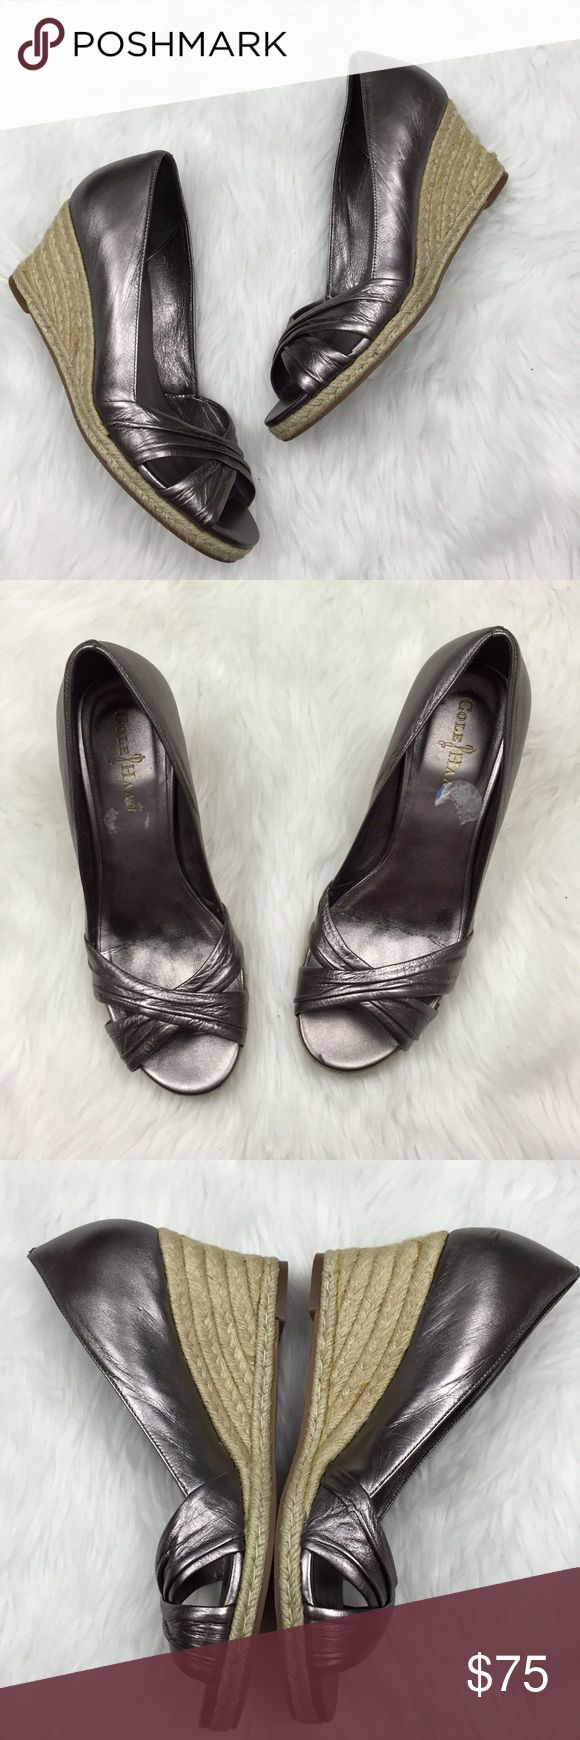 🌞Cole Haan Metallic Dark Silver Espadrille Wedges Cole Haan Women's Nike Air Metallic Dark Silver Espadrille Wedges Size 7.5  This has been gently worn with no major flaws.  There may be minor scuffing. Please refer to photos for more details. Cole Haan Shoes Wedges